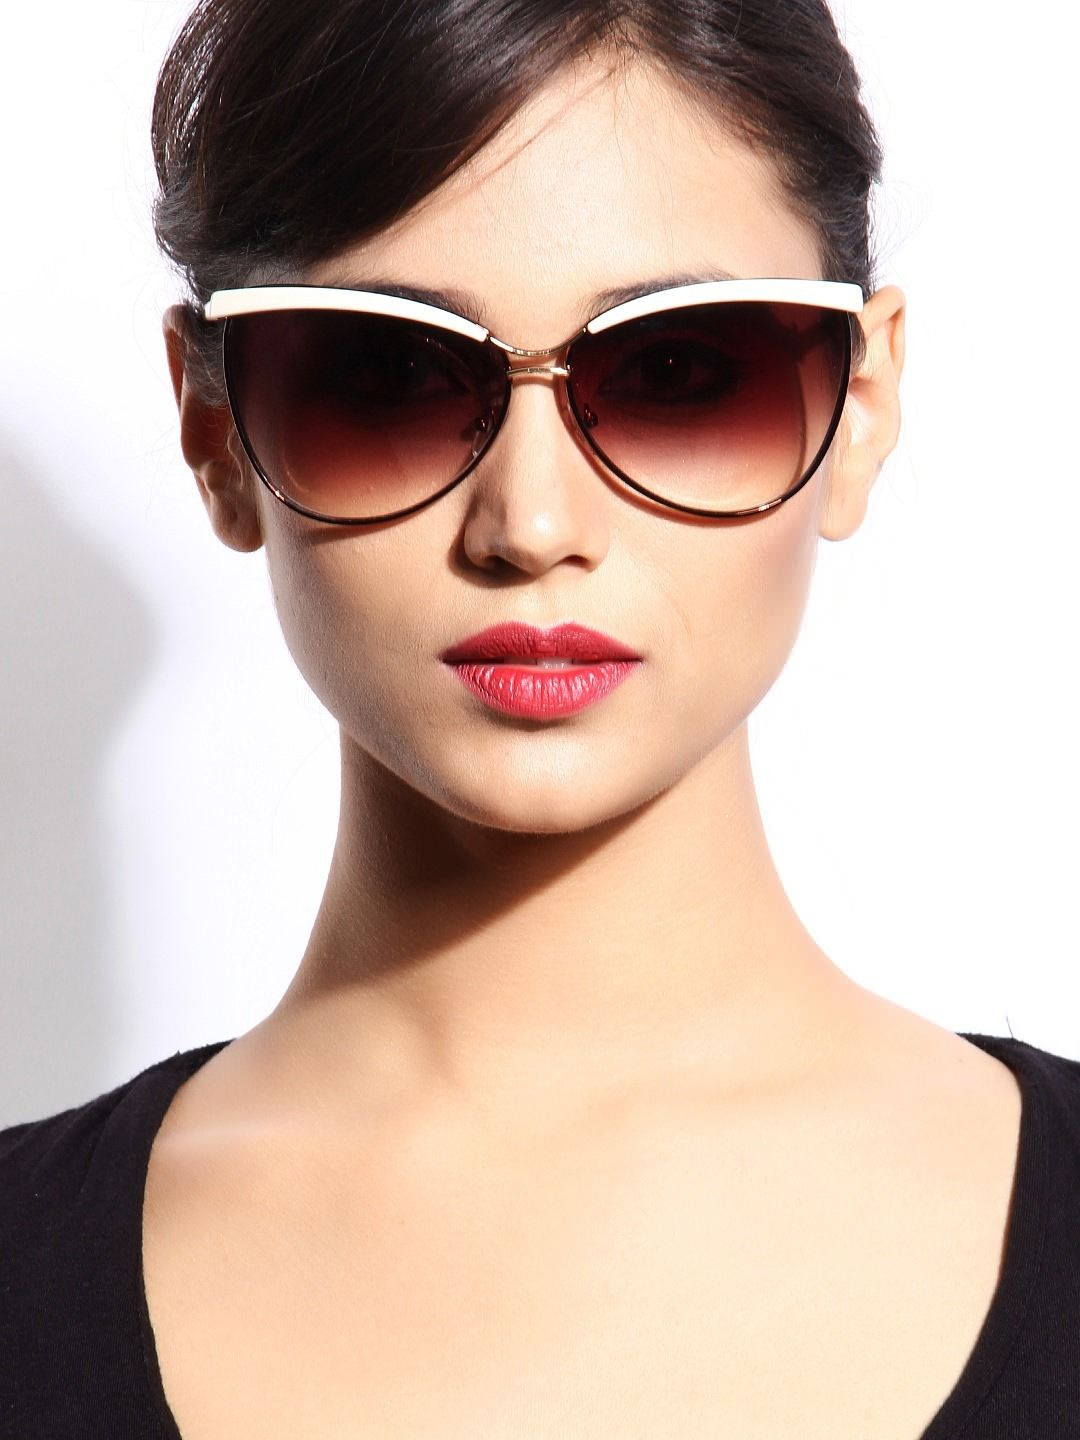 shades for women  glasses for women - Google Search